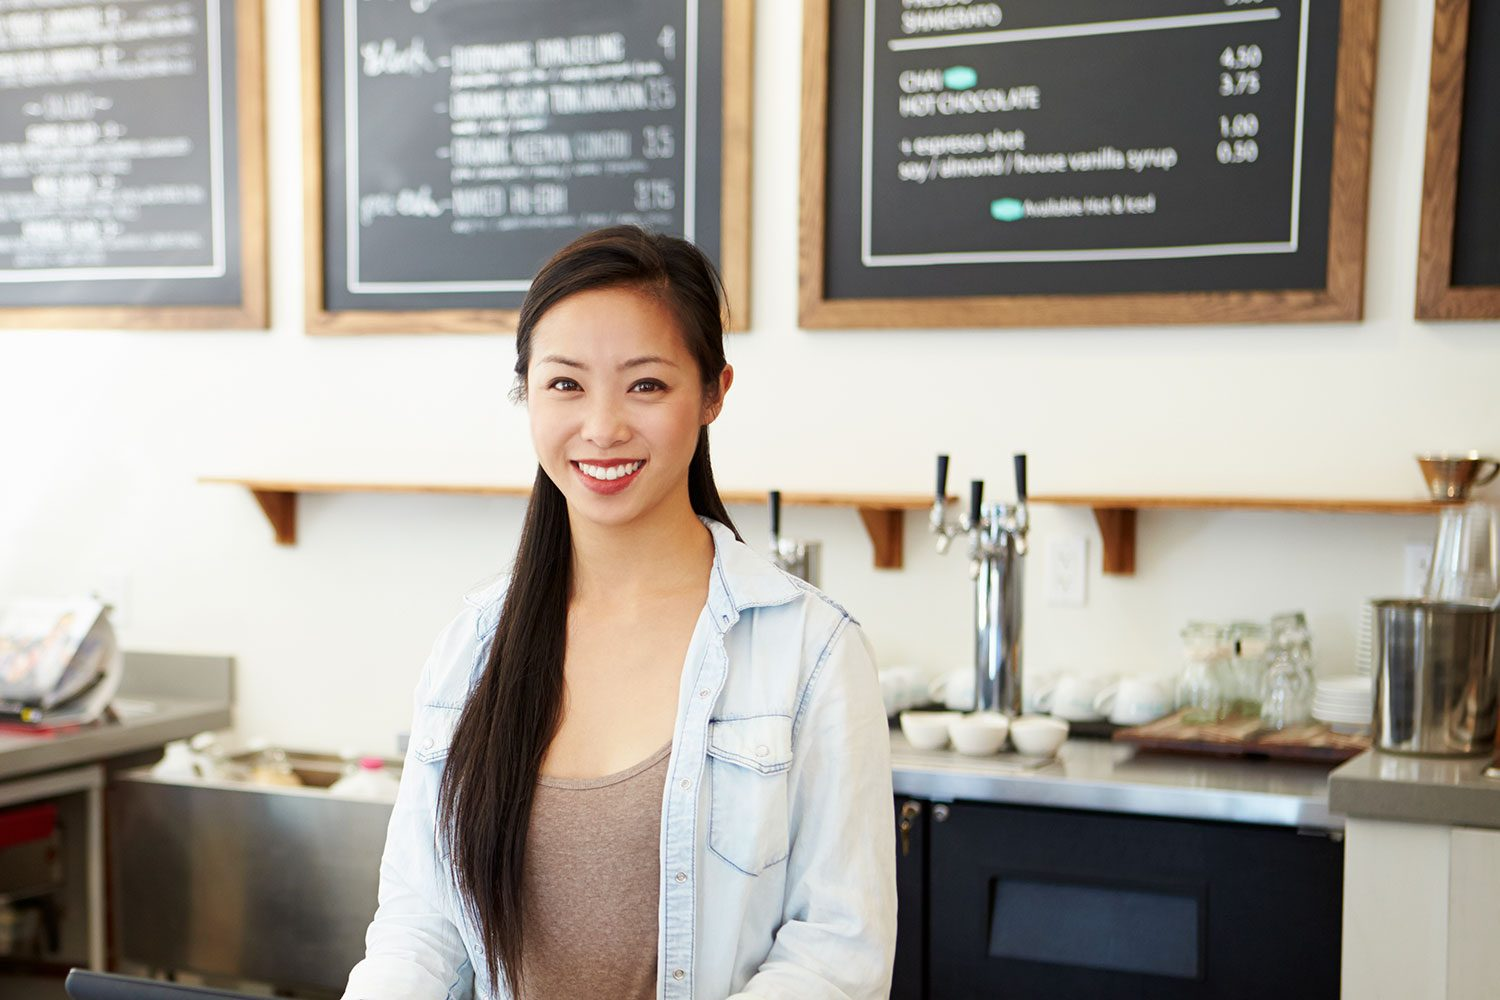 Young Smiling Woman Working At A Coffee Shop